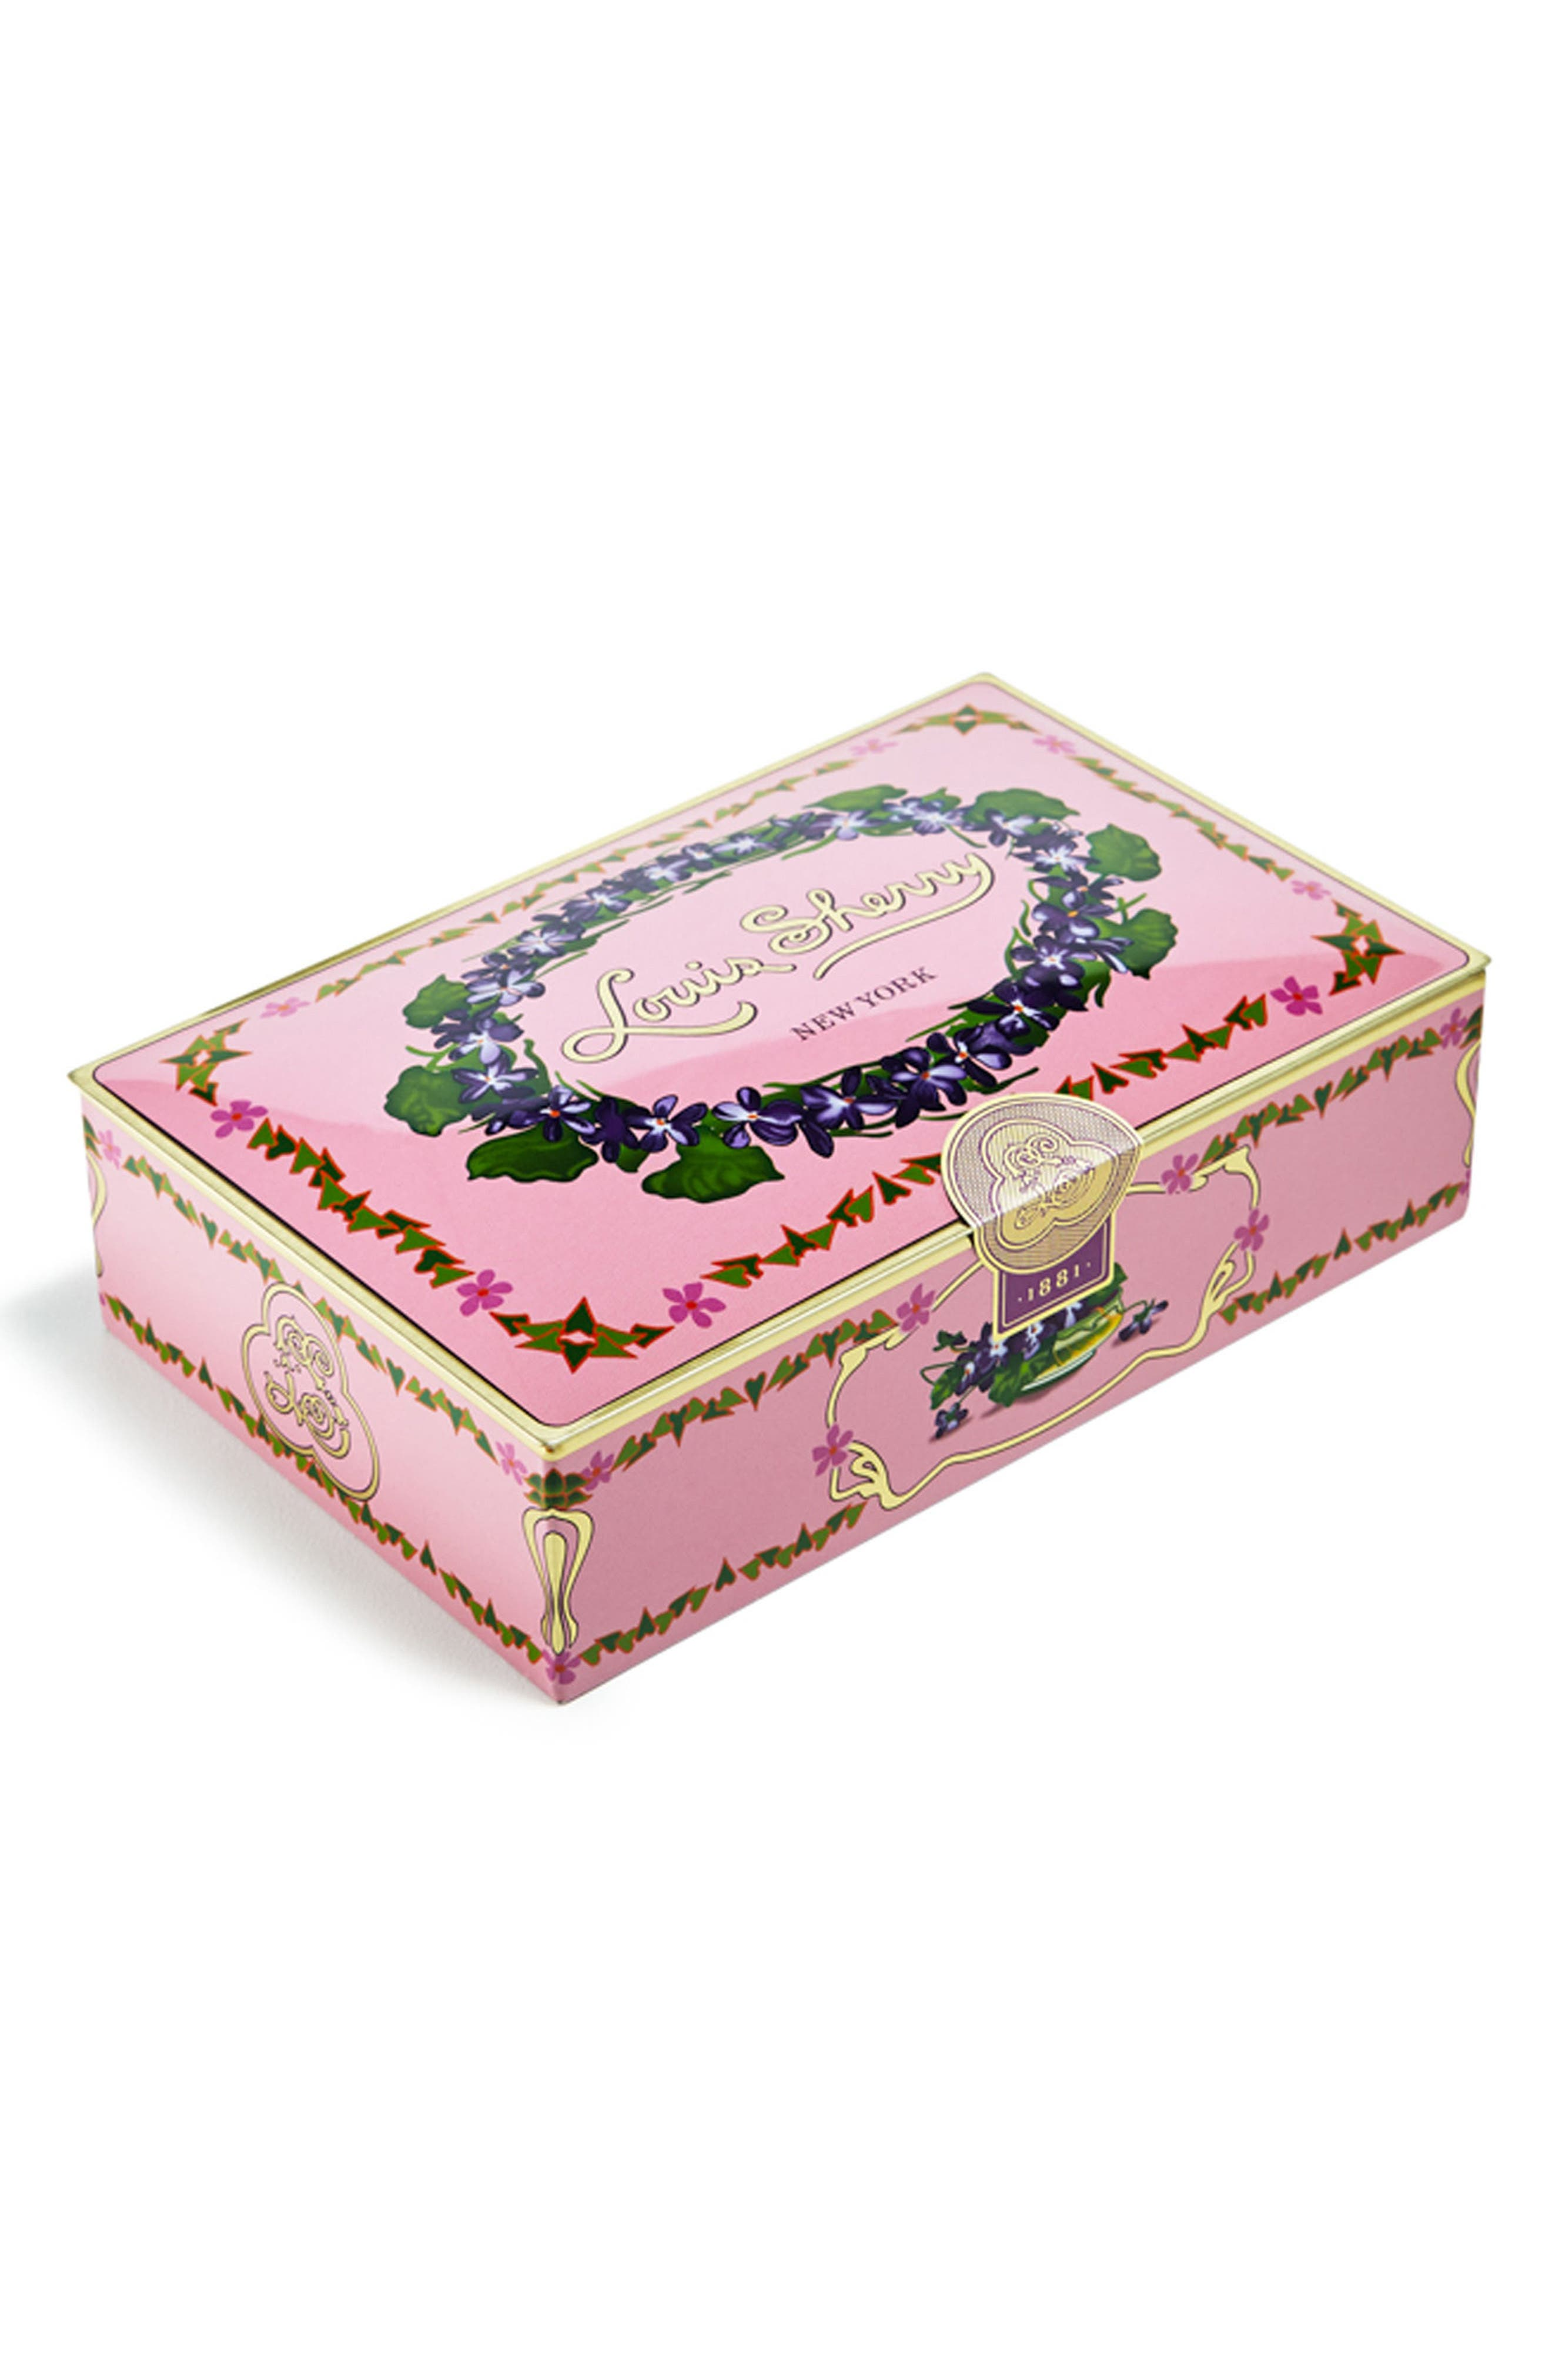 Orchid 12-Piece Chocolate Truffle Tin,                         Main,                         color, PINK WITH CIRCLE OF VIOLETS